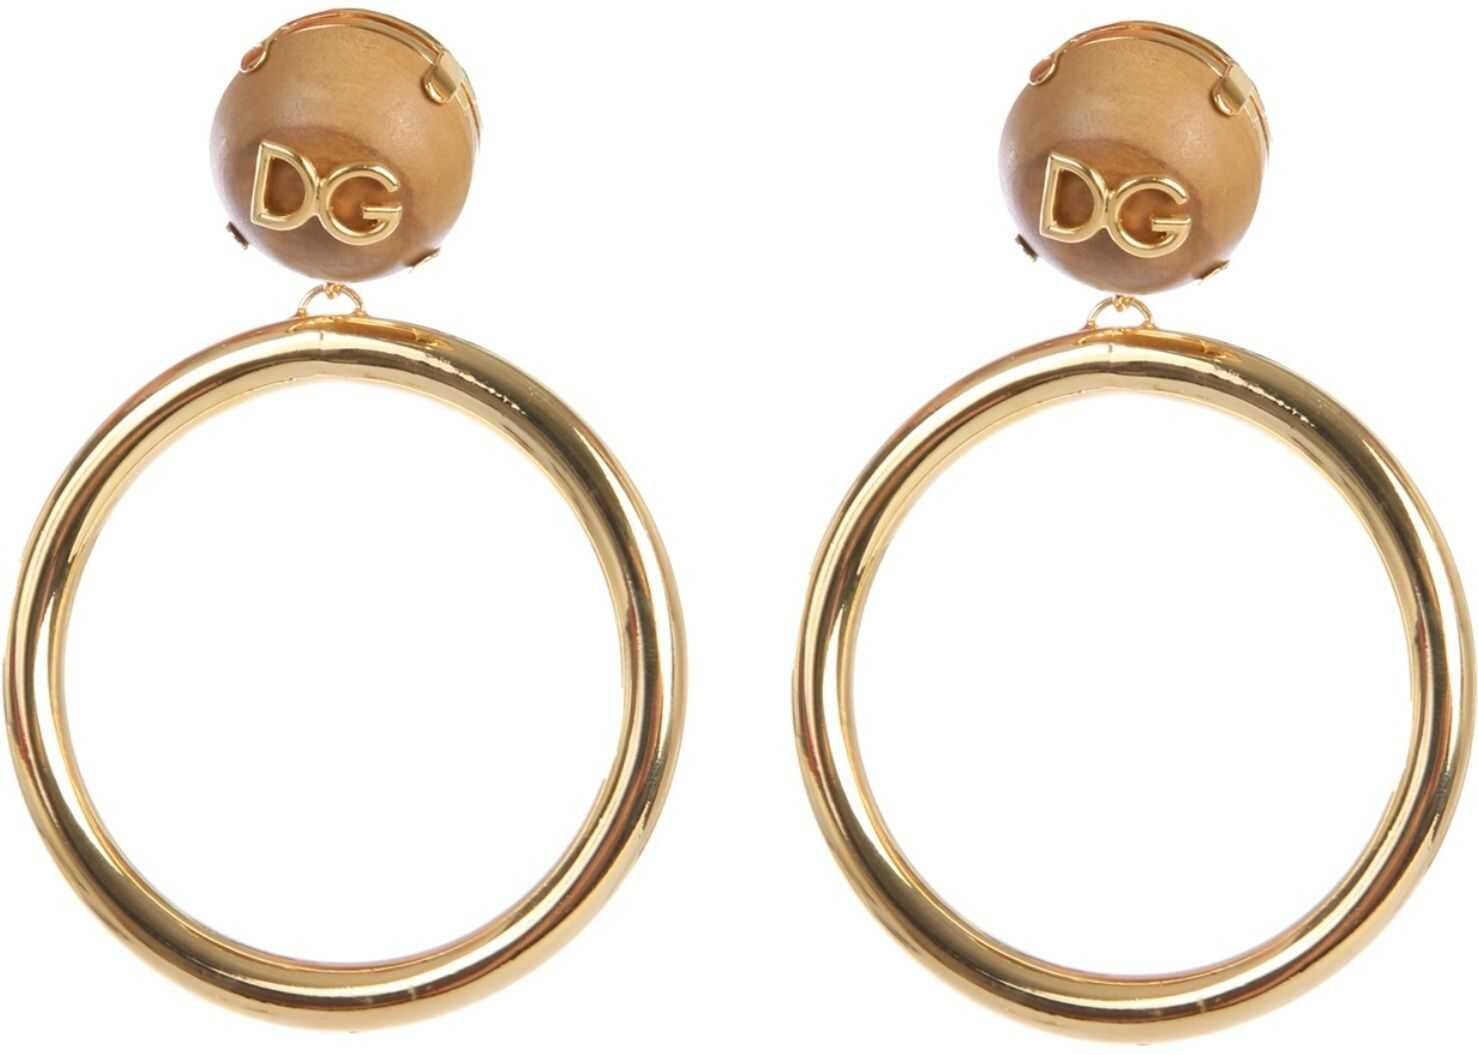 Dolce & Gabbana Earrings With Logo GOLD